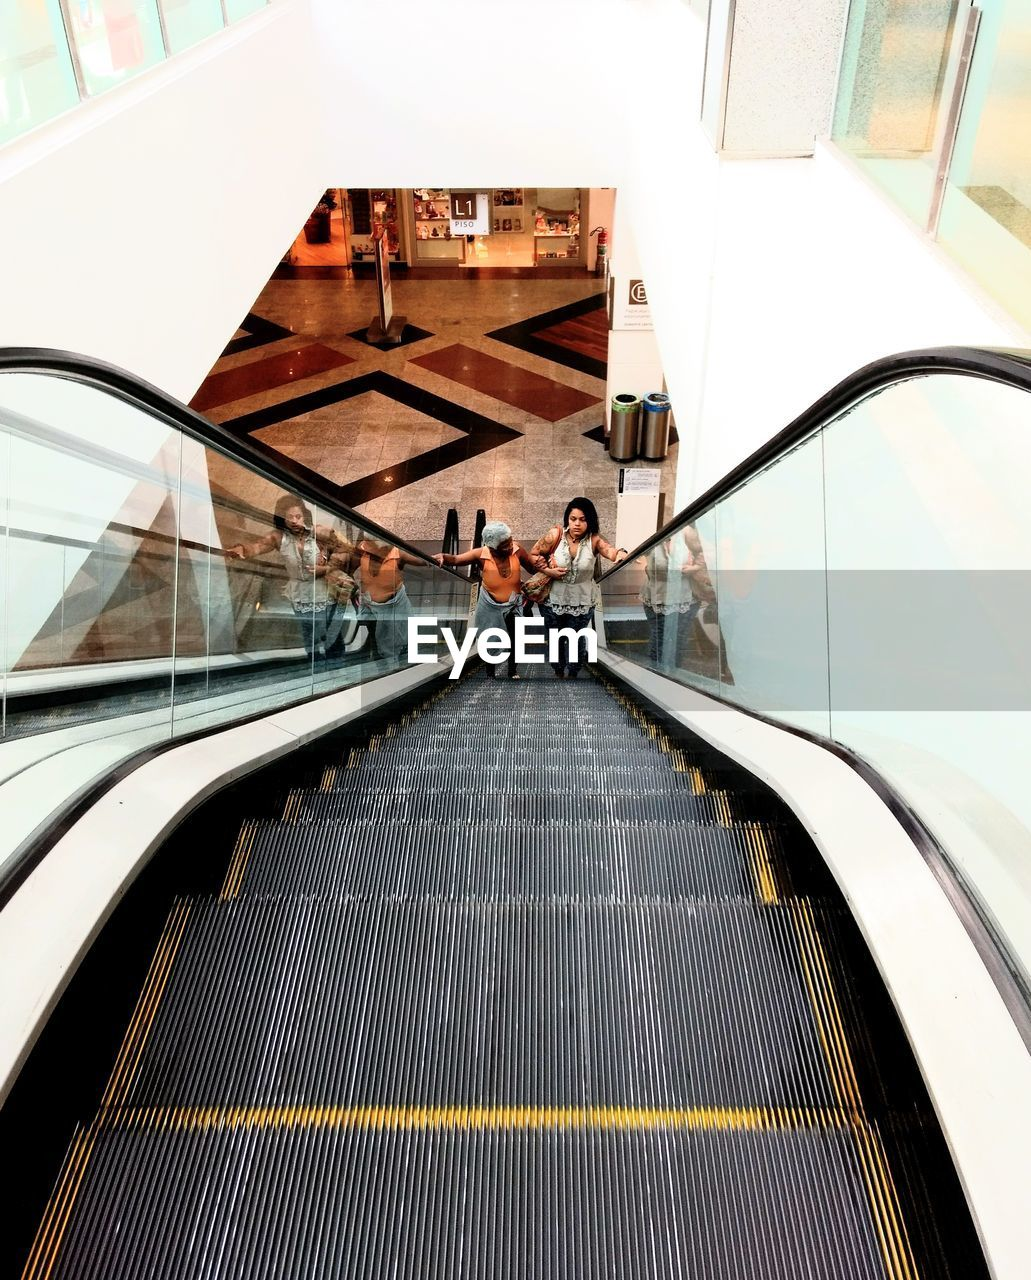 architecture, staircase, escalator, real people, transportation, men, railing, steps and staircases, built structure, lifestyles, connection, adult, convenience, women, group of people, leisure activity, indoors, moving walkway, travel, modern, couple - relationship